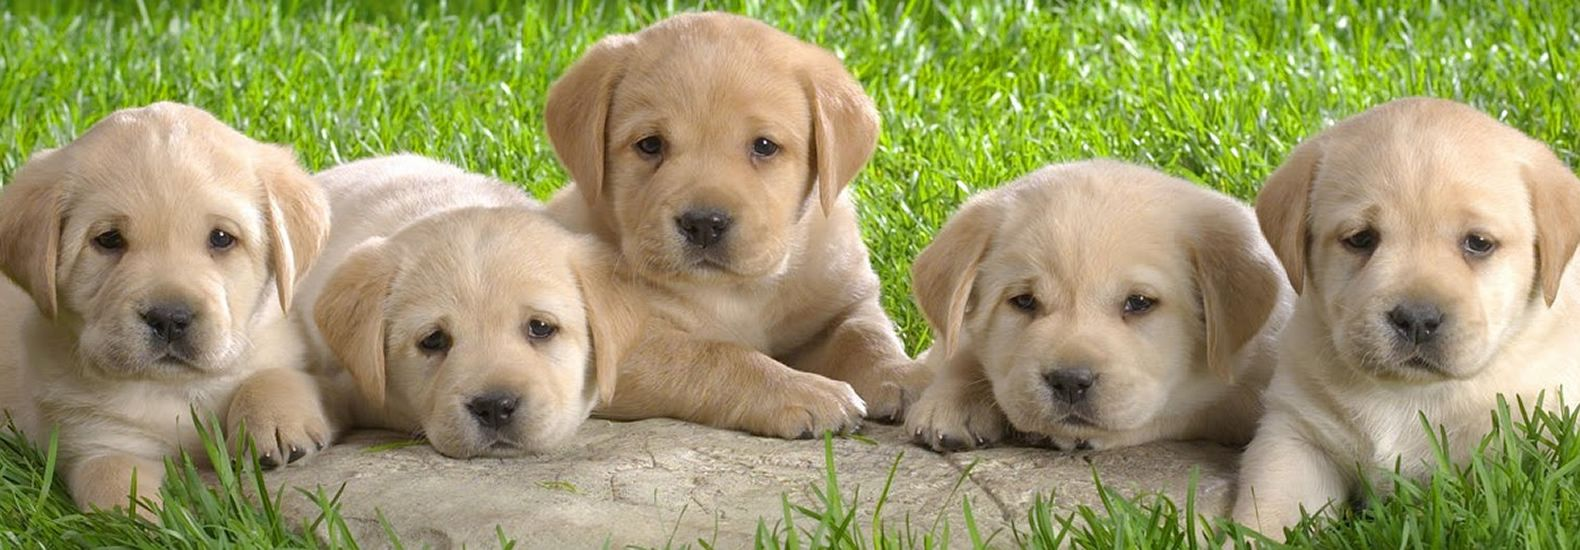 About Our Company Petland Columbus Pet Store Ohio Puppies